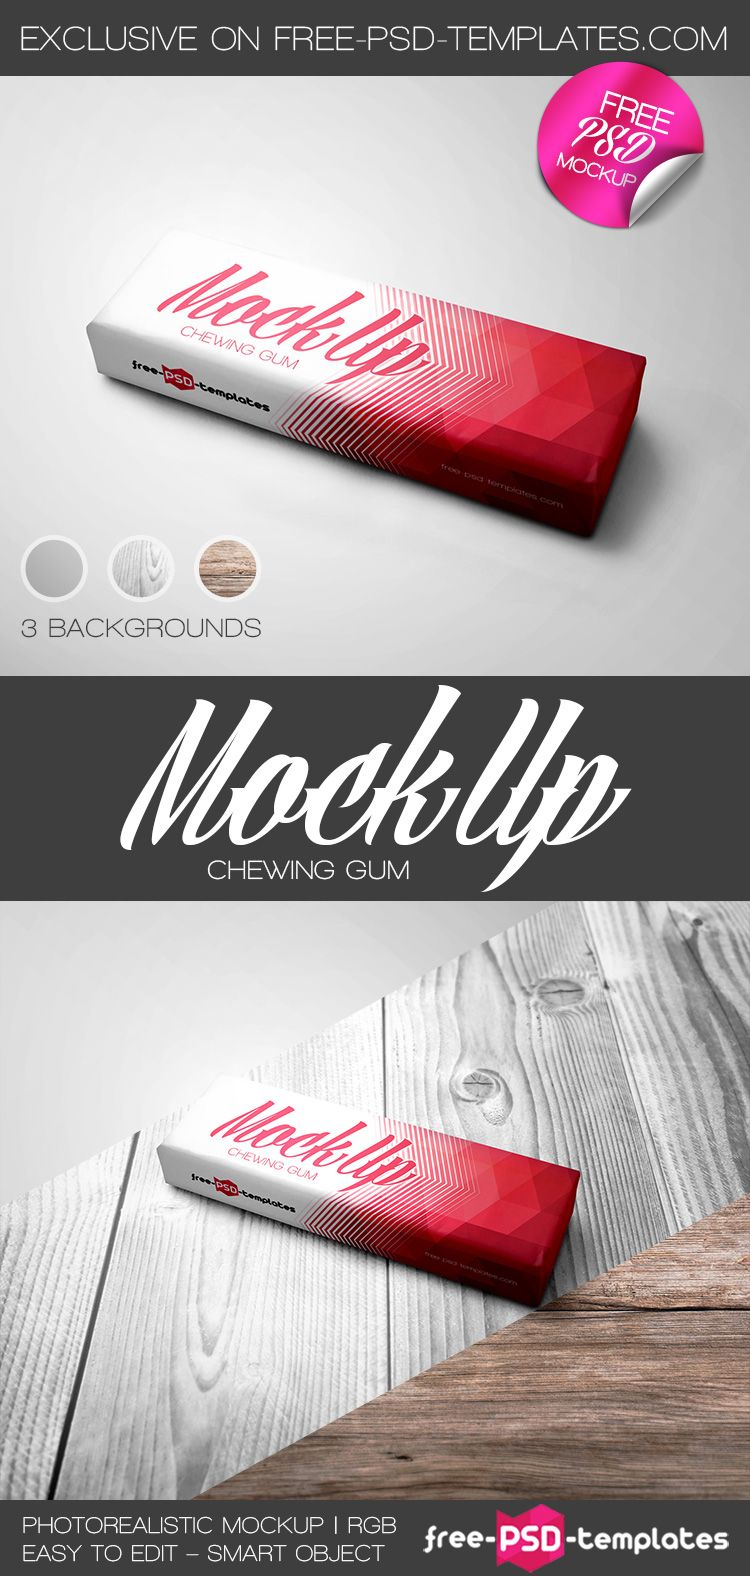 Free Chewing Gum Mock-up | Free Psd Templates | #free #photoshop ...